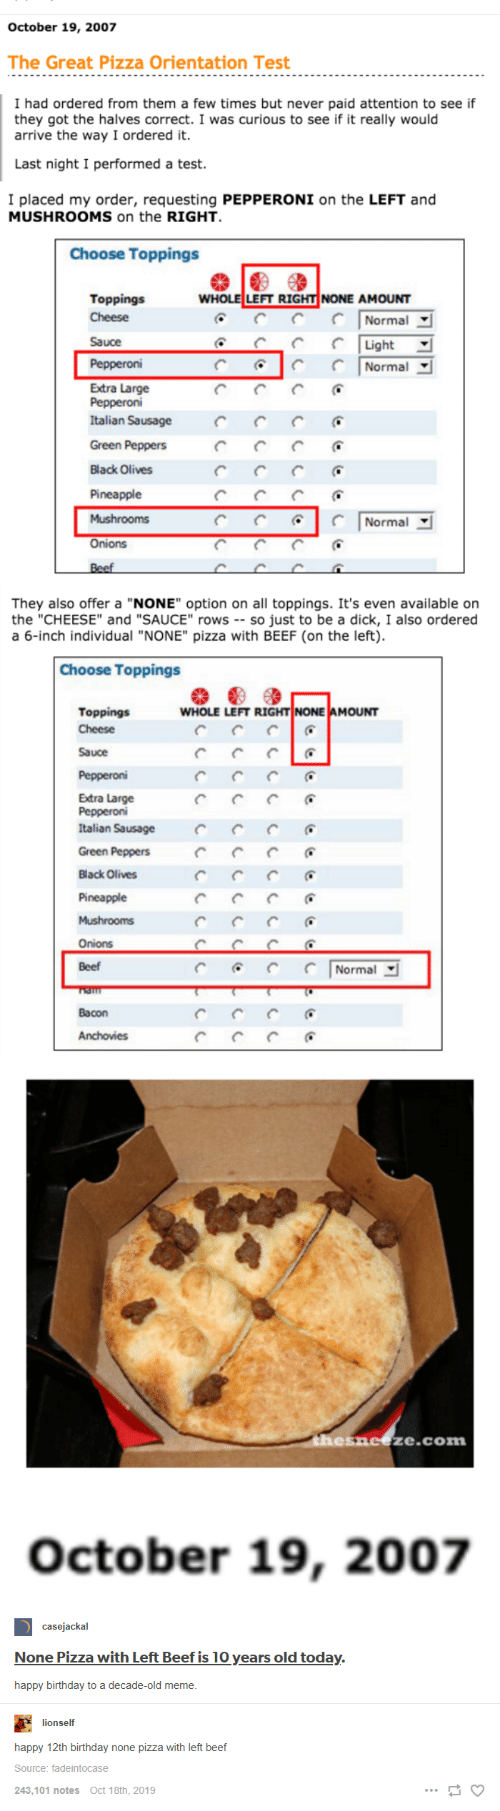 """Beef, Birthday, and Meme: October 19, 2007  The Great Pizza Orientation Test  I had ordered from them a few times but never paid attention to see if  they got the halves correct. I was curious to see if it really would  arrive the way I ordered it.  Last night I performed a test.  I placed my order, requesting PEPPERONI on the LEFT and  MUSHROOMS on the RIGHT  Choose Toppings  WHOLE LEFT RIGHT NONE AMOUNT  Toppings  Cheese  Normal  Sauce  Light  Pepperoni  Normal  Extra Large  Рерperoni  Italian Sausage  Green Peppers  Black Olives  Pineapple  Mushrooms  Normal  Onions  Beef  They also offer a """"NONE"""" option on all toppings. It's even available on  the """"CHEESE"""" and """"SAUCE"""" rows -- so just to be a dick, I also ordered  a 6-inch individual """"NONE"""" pizza with BEEF (on the left).  Choose Toppings  WHOLE LEFT RIGHT NONE AMOUNT  Toppings  Cheese  Sauce  Pepperoni  Extra Large  Реррeroni  Italian Sausage  Green Peppers  Black Olives  Pineapple  Mushrooms  Onions  Beef  Normal  Bacon  Anchovies  thesneeze.com  October 19, 2007  casejackal  None Pizza with Left Beef is 10 years old today.  happy birthday to a decade-old meme.  lionself  happy 12th birthday none pizza with left beef  Source: fadeintocase  243,101 notes  Oct 18th, 2019"""